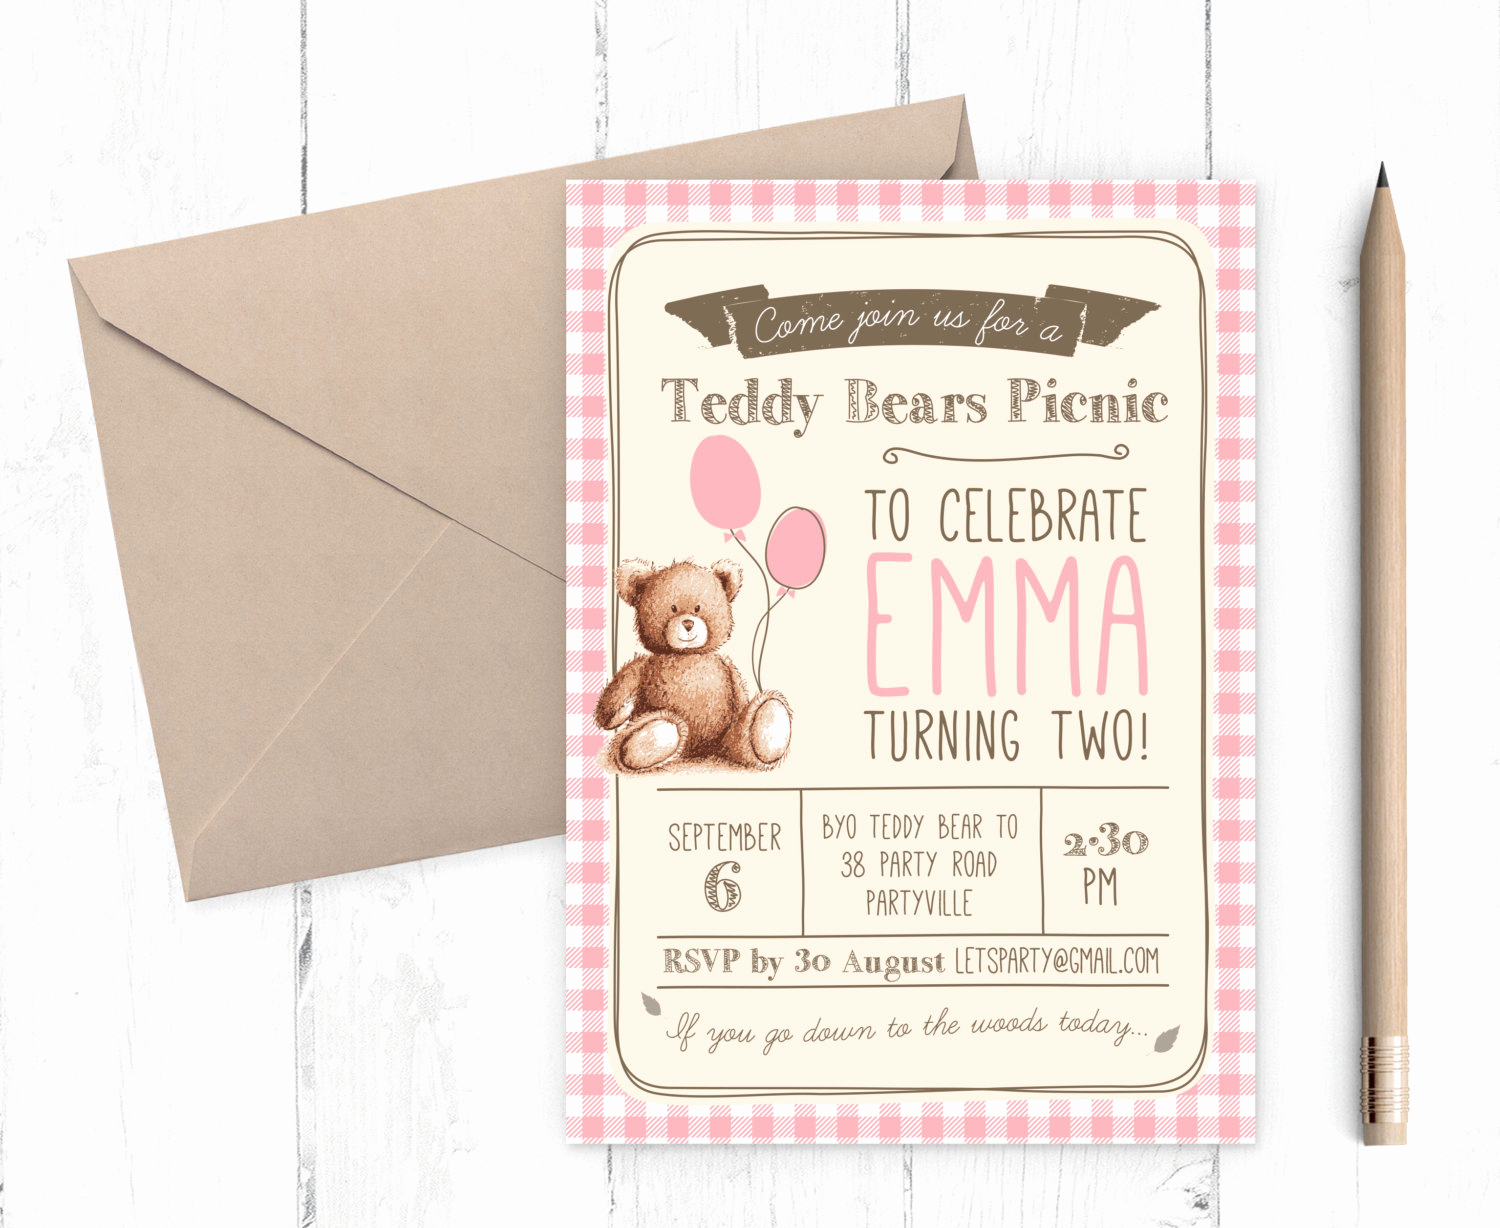 Teddy Bear Picnic Invitation Best Of Gingham Teddy Bears Picnic Birthday Invitation Uni